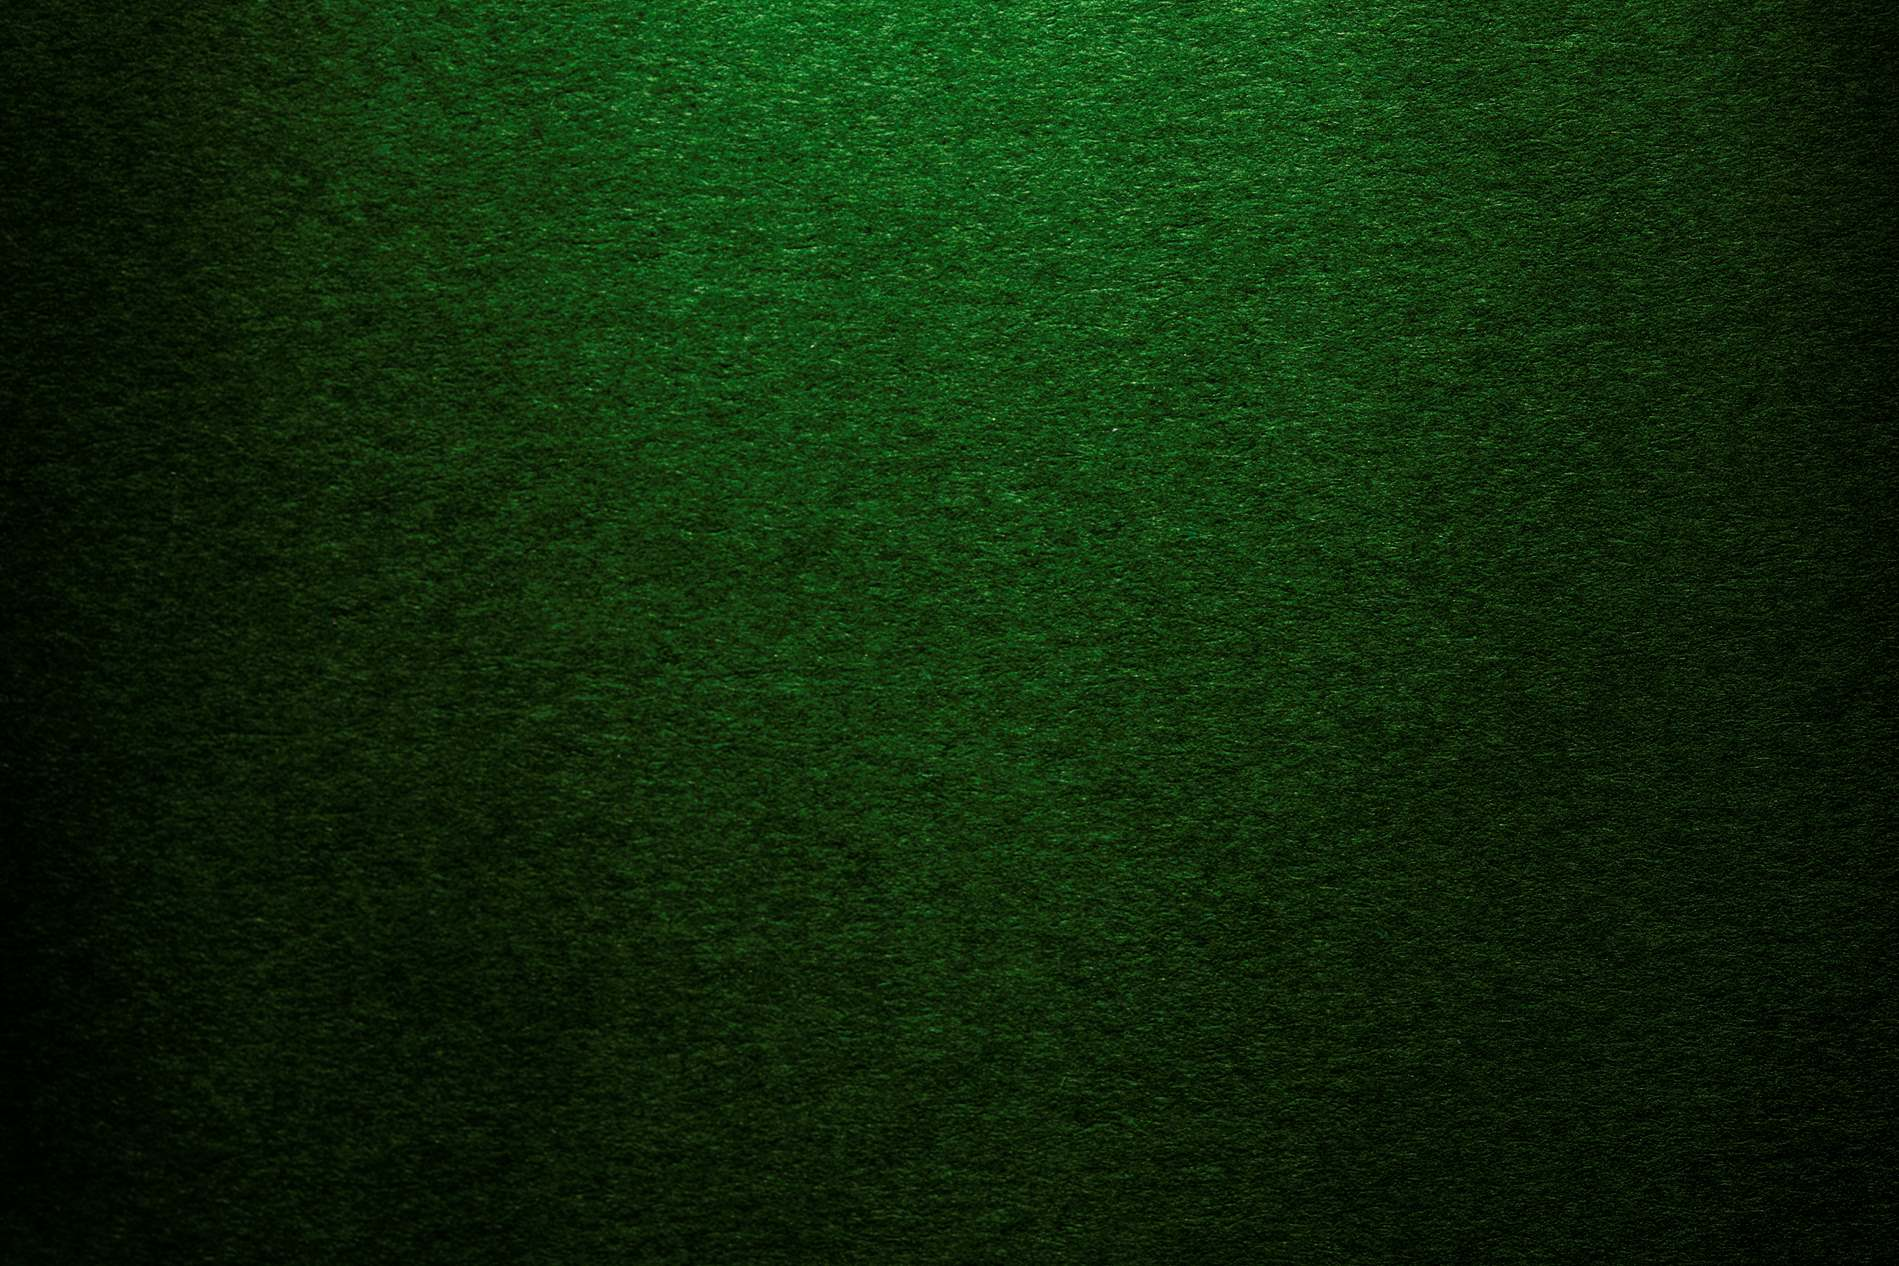 Dark Green Clean Paper Background Texture - PhotoHDX